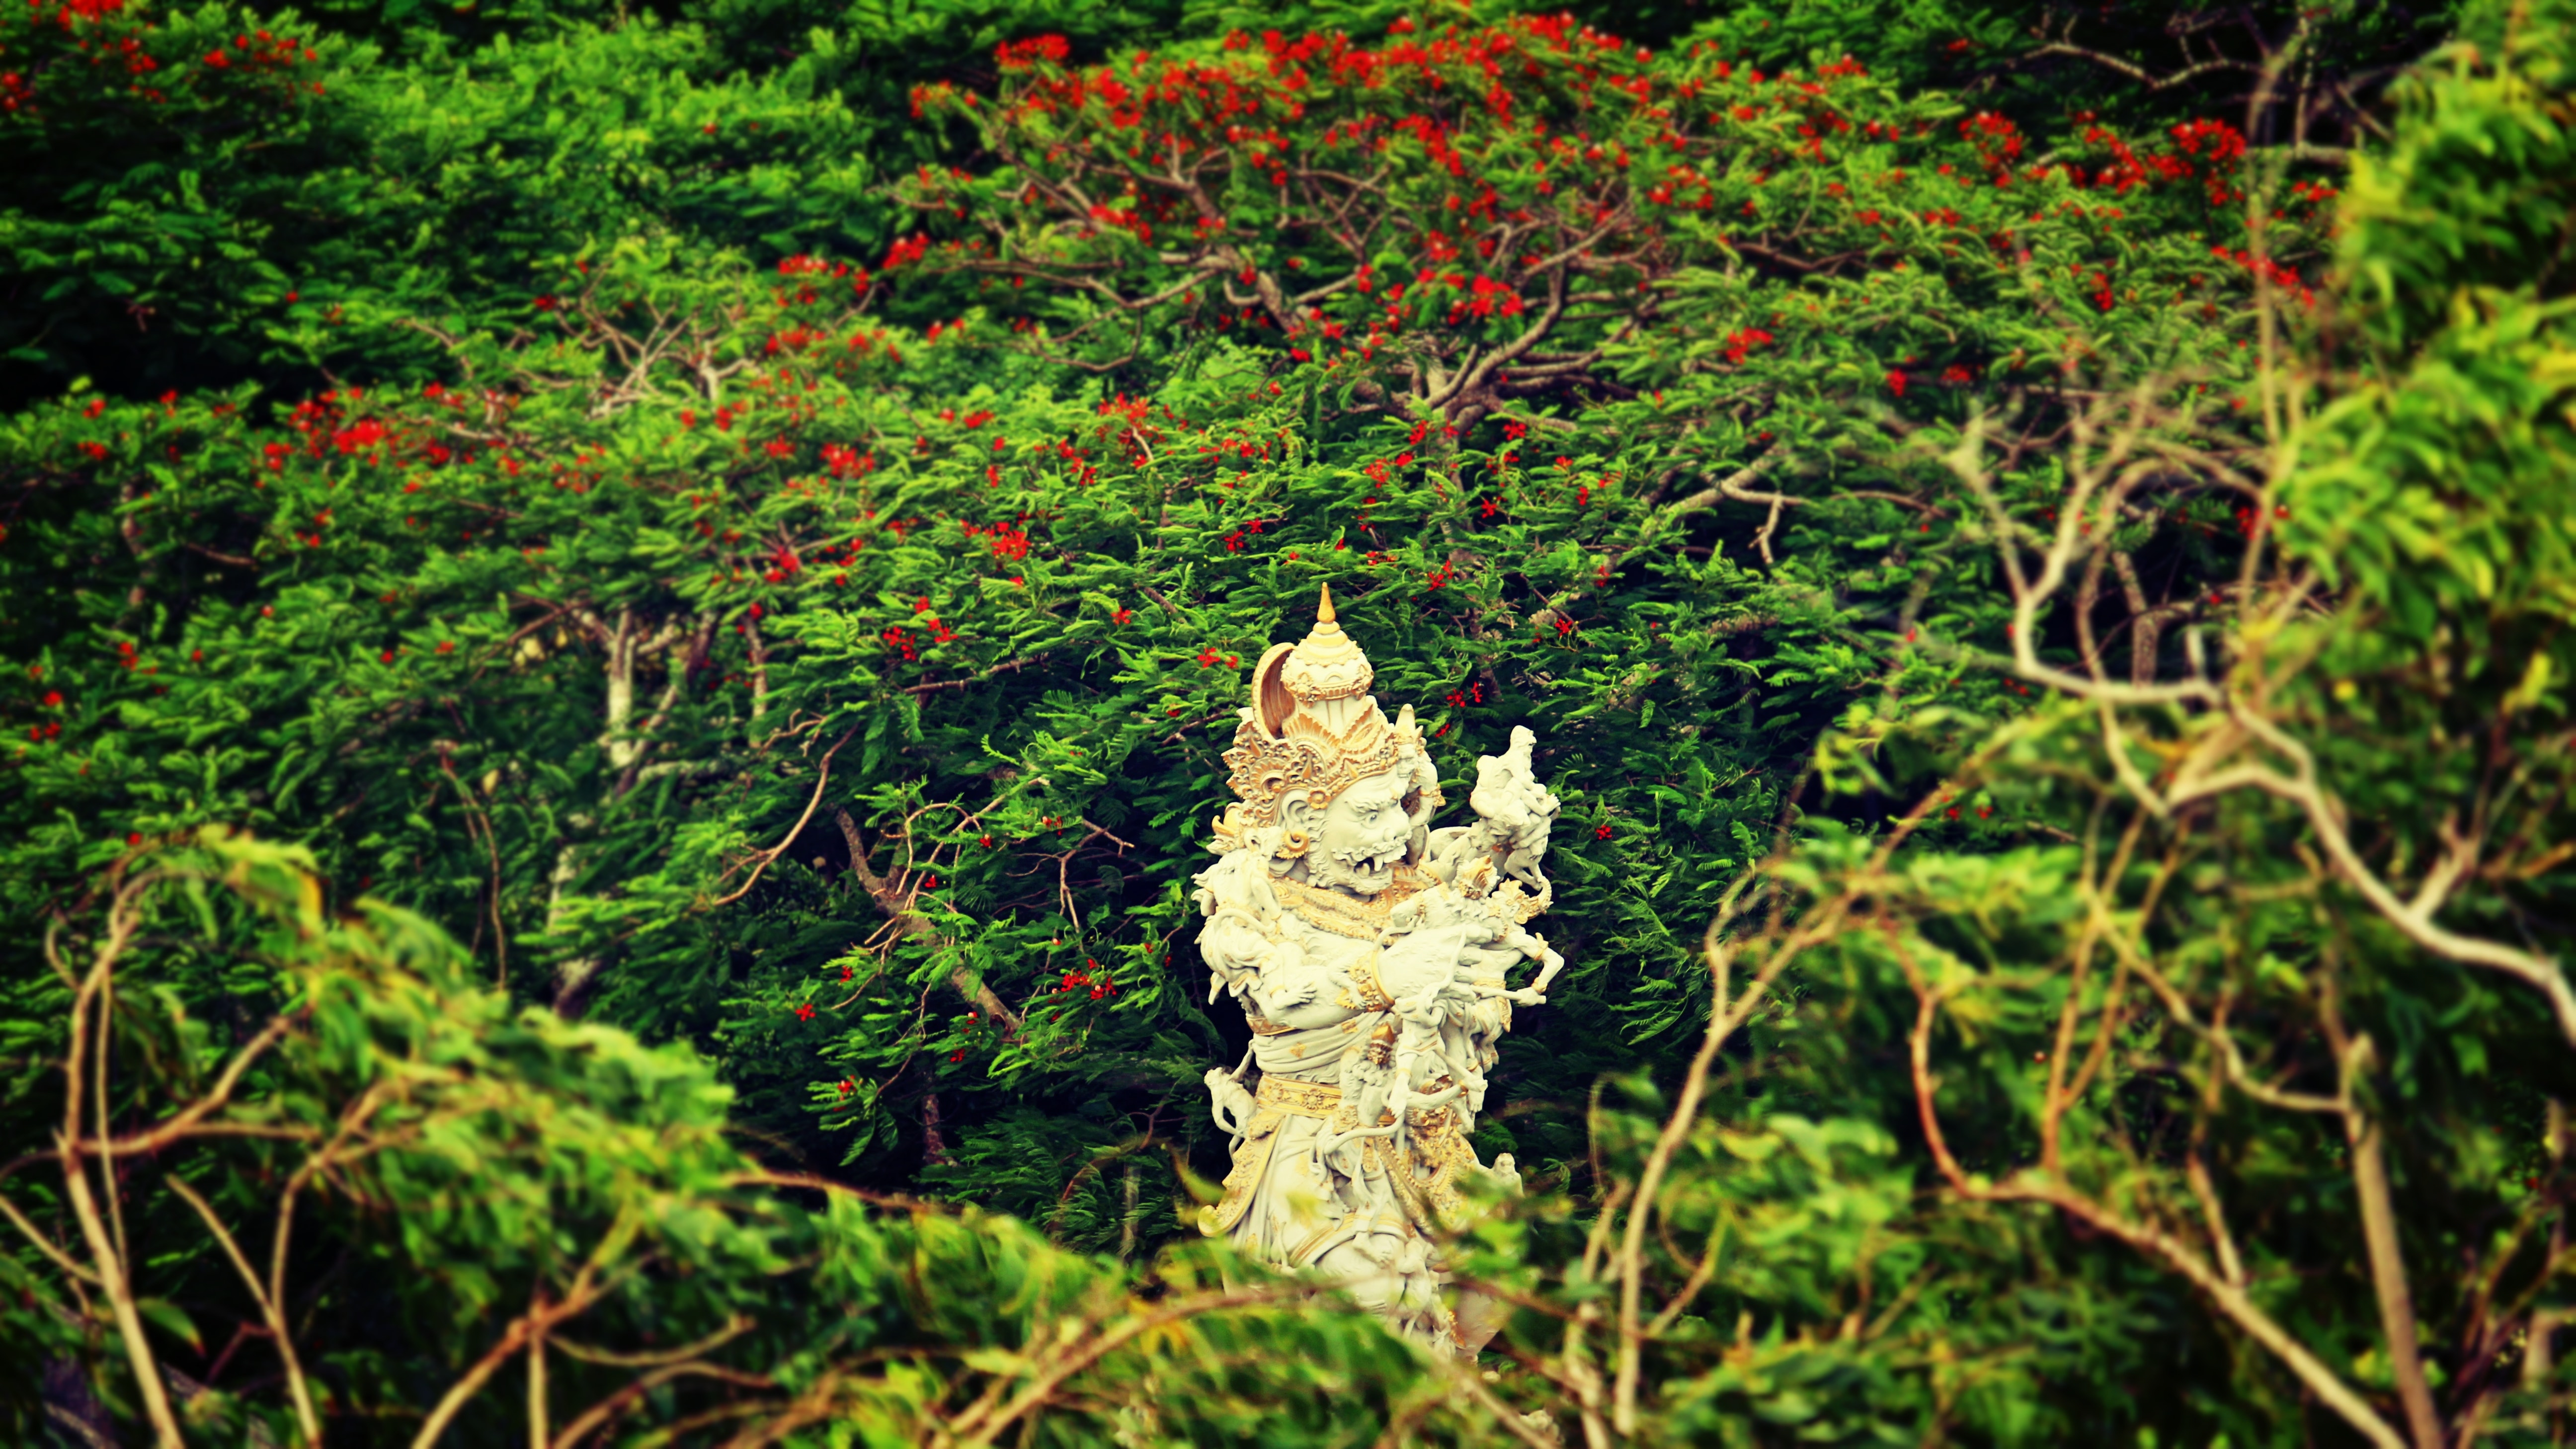 Beige hindu statue surrounded by trees at daytime photo